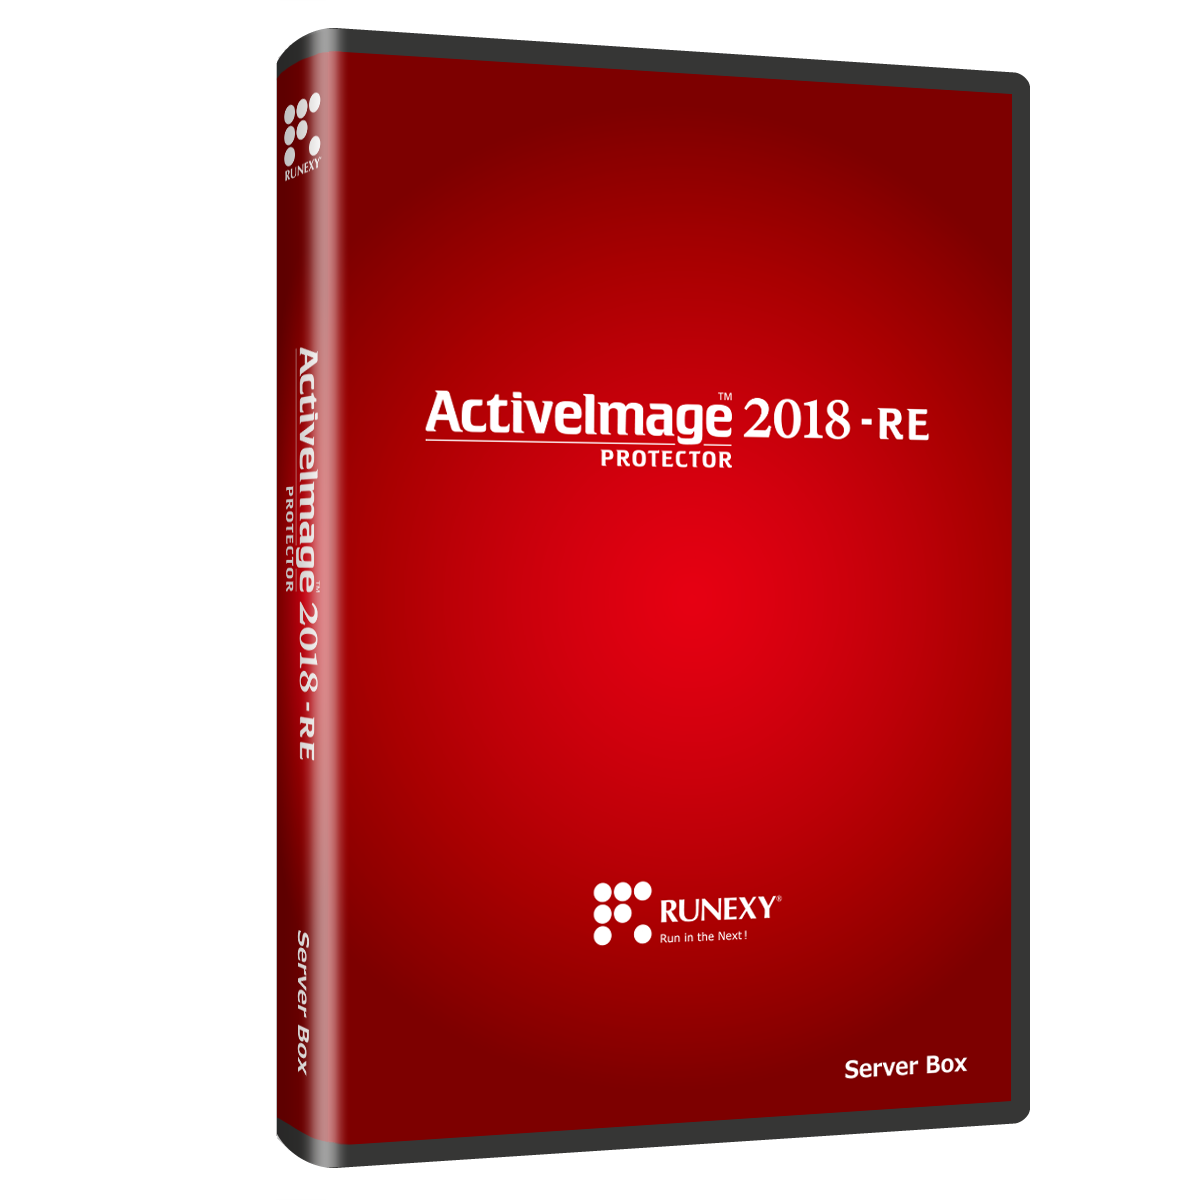 ActiveImage Protector 2018-RE パッケージ画像